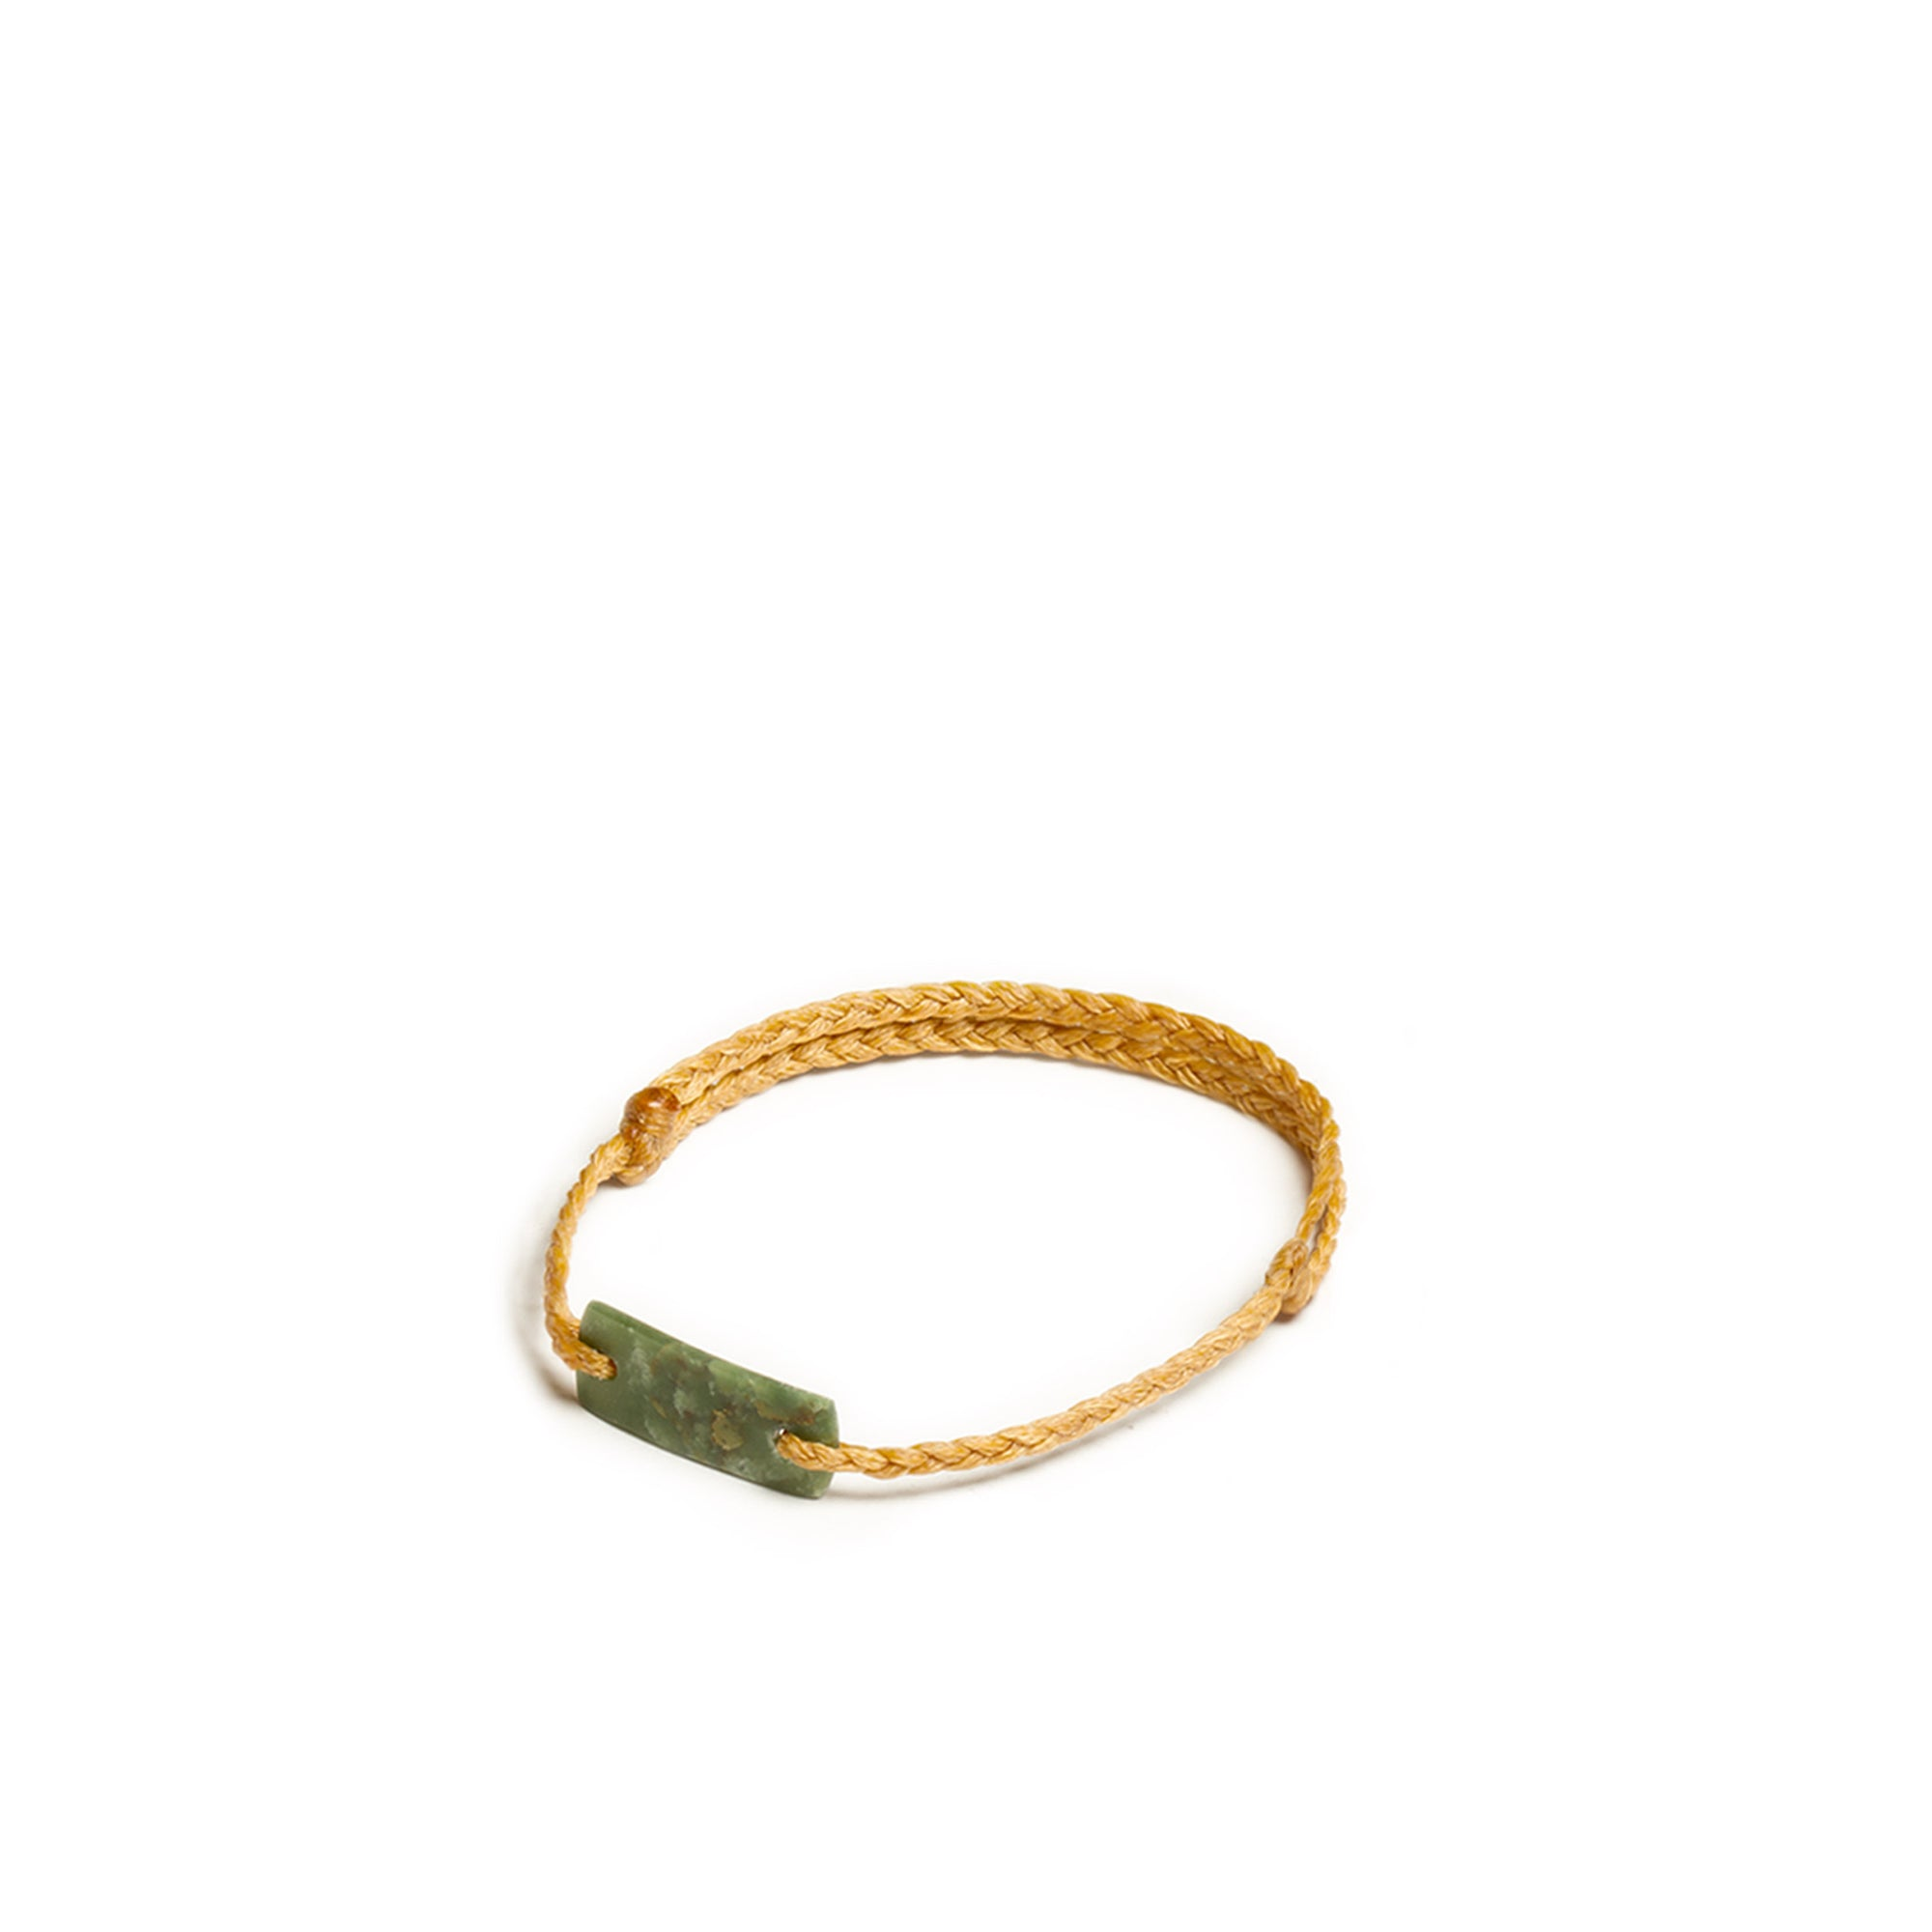 New Zealand Jade Mini Mustard Plaited Bracelet